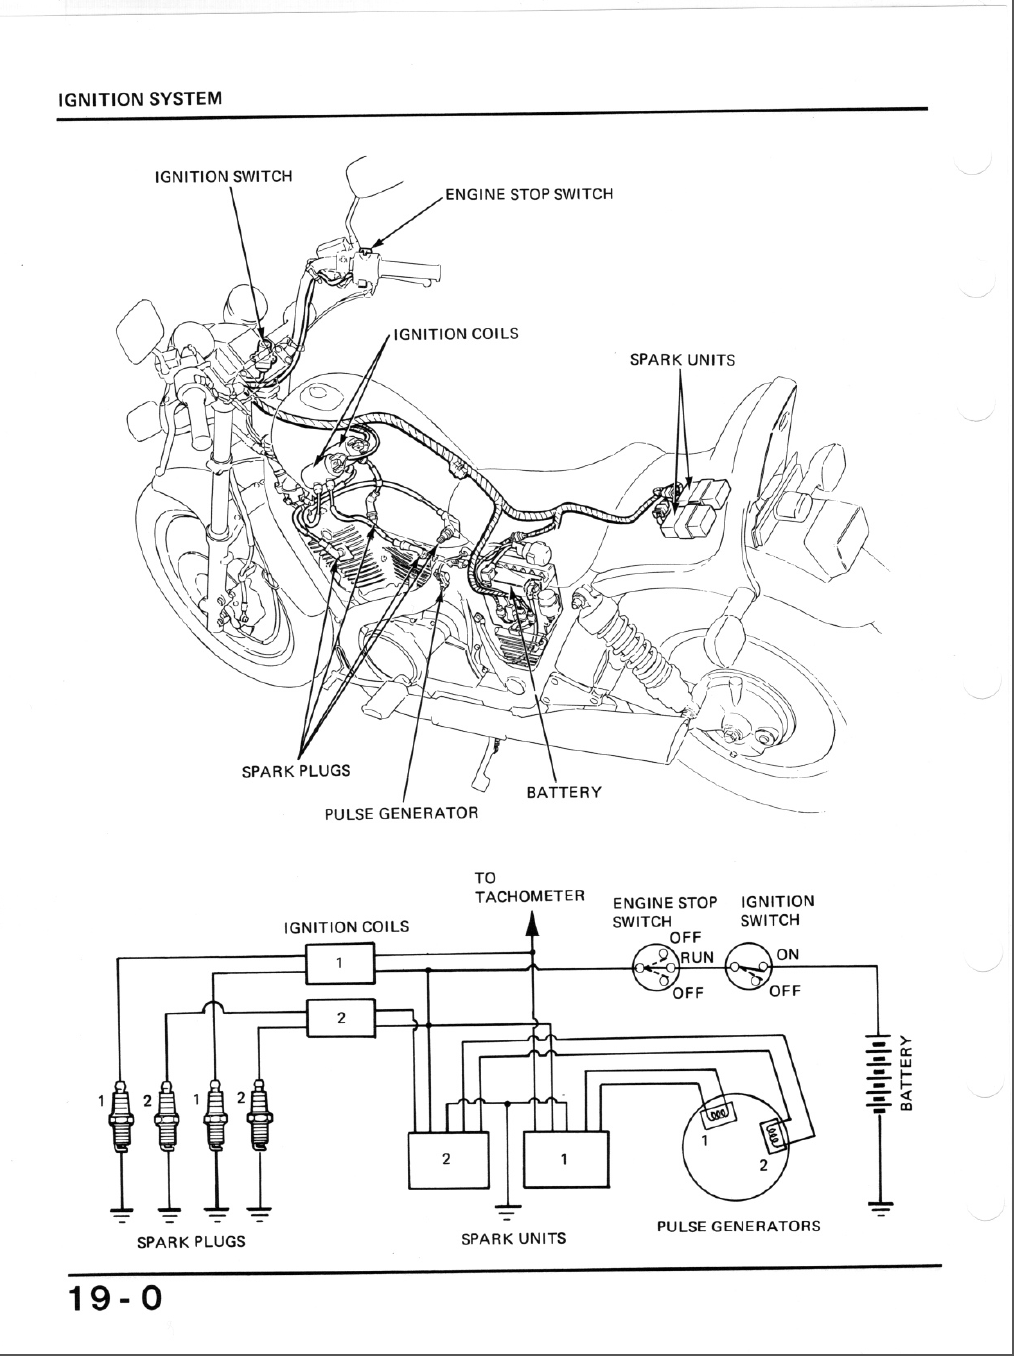 20 Hp Kohler Engine Wiring Diagram as well Photocell And Timeclock Wiring Diagram additionally Onan 16 Hp Oil Filter Wiring Diagrams additionally Motor Control Circuit Wiring Diagram together with Club Car Ignition Switch Wiring Diagram. on chevy starter wiring diagram